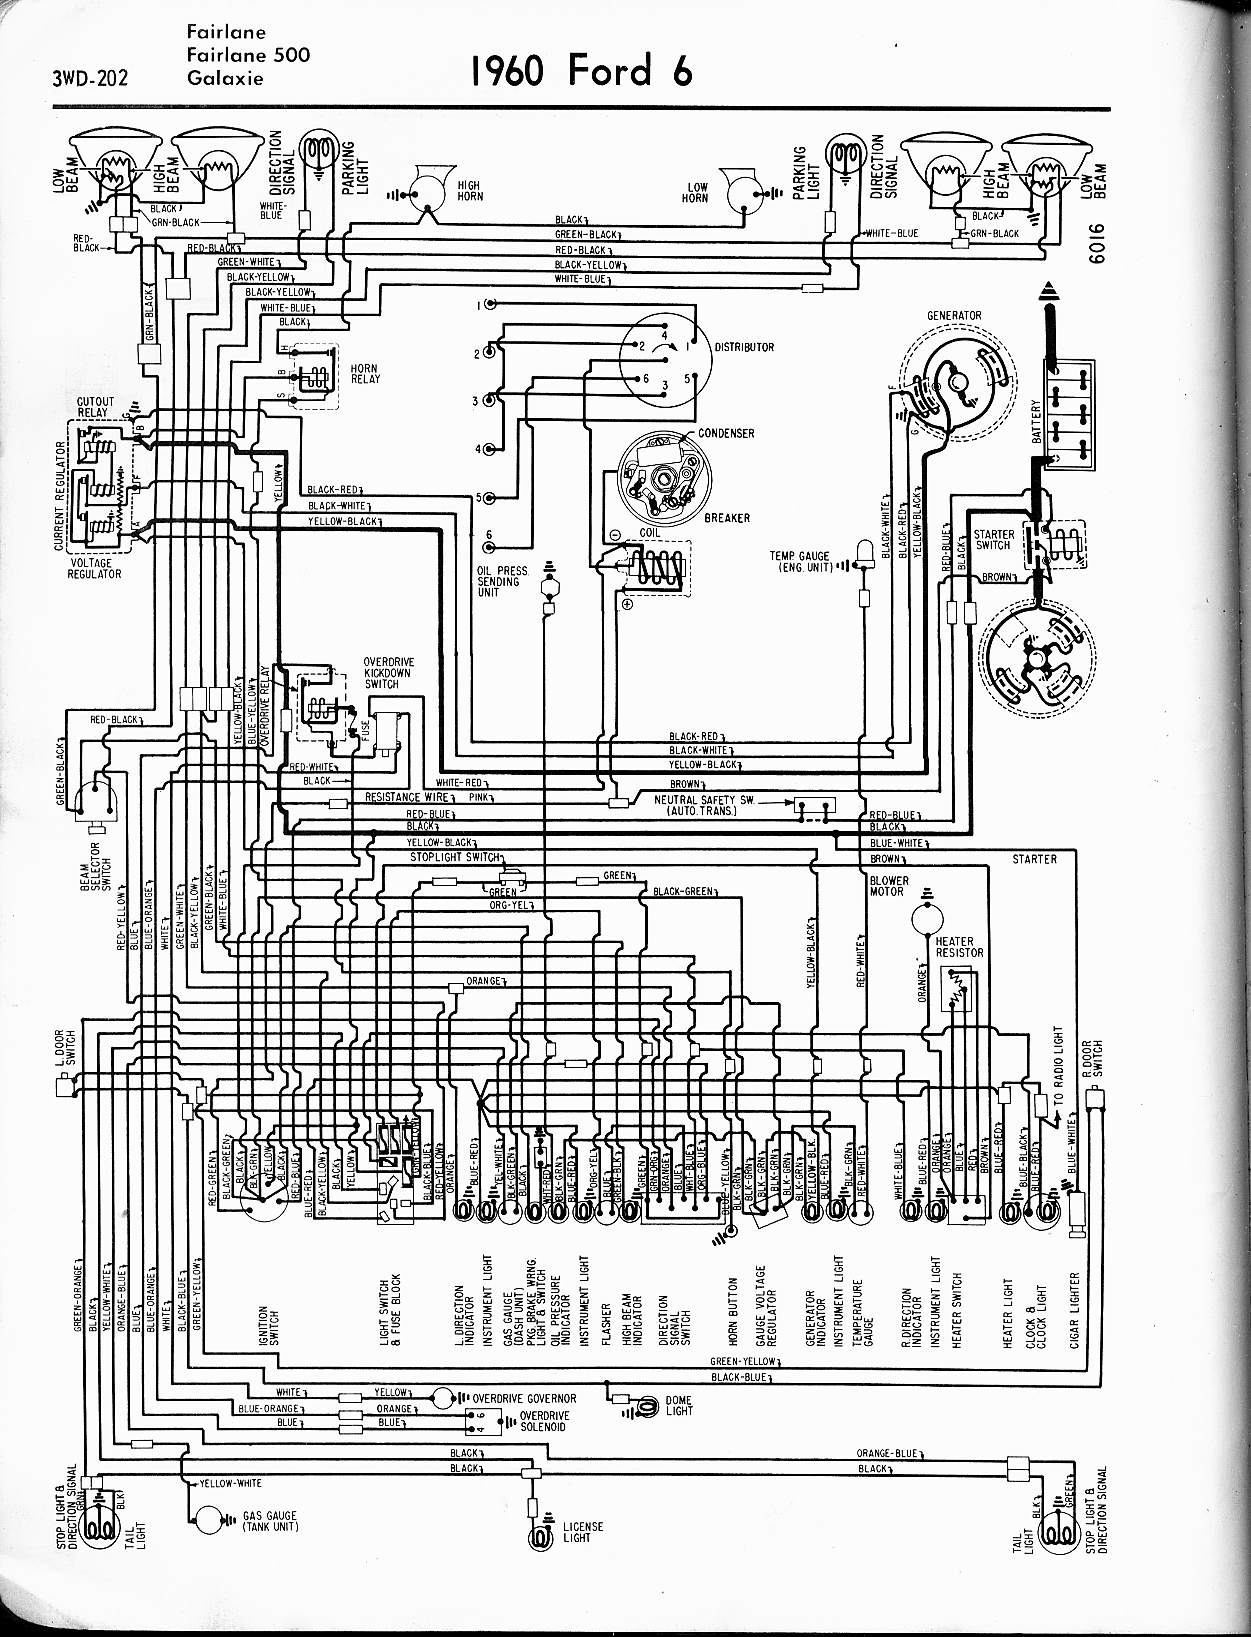 1957 dodge wiring diagram index listing of wiring diagrams rh zyefol7g 60minuta info